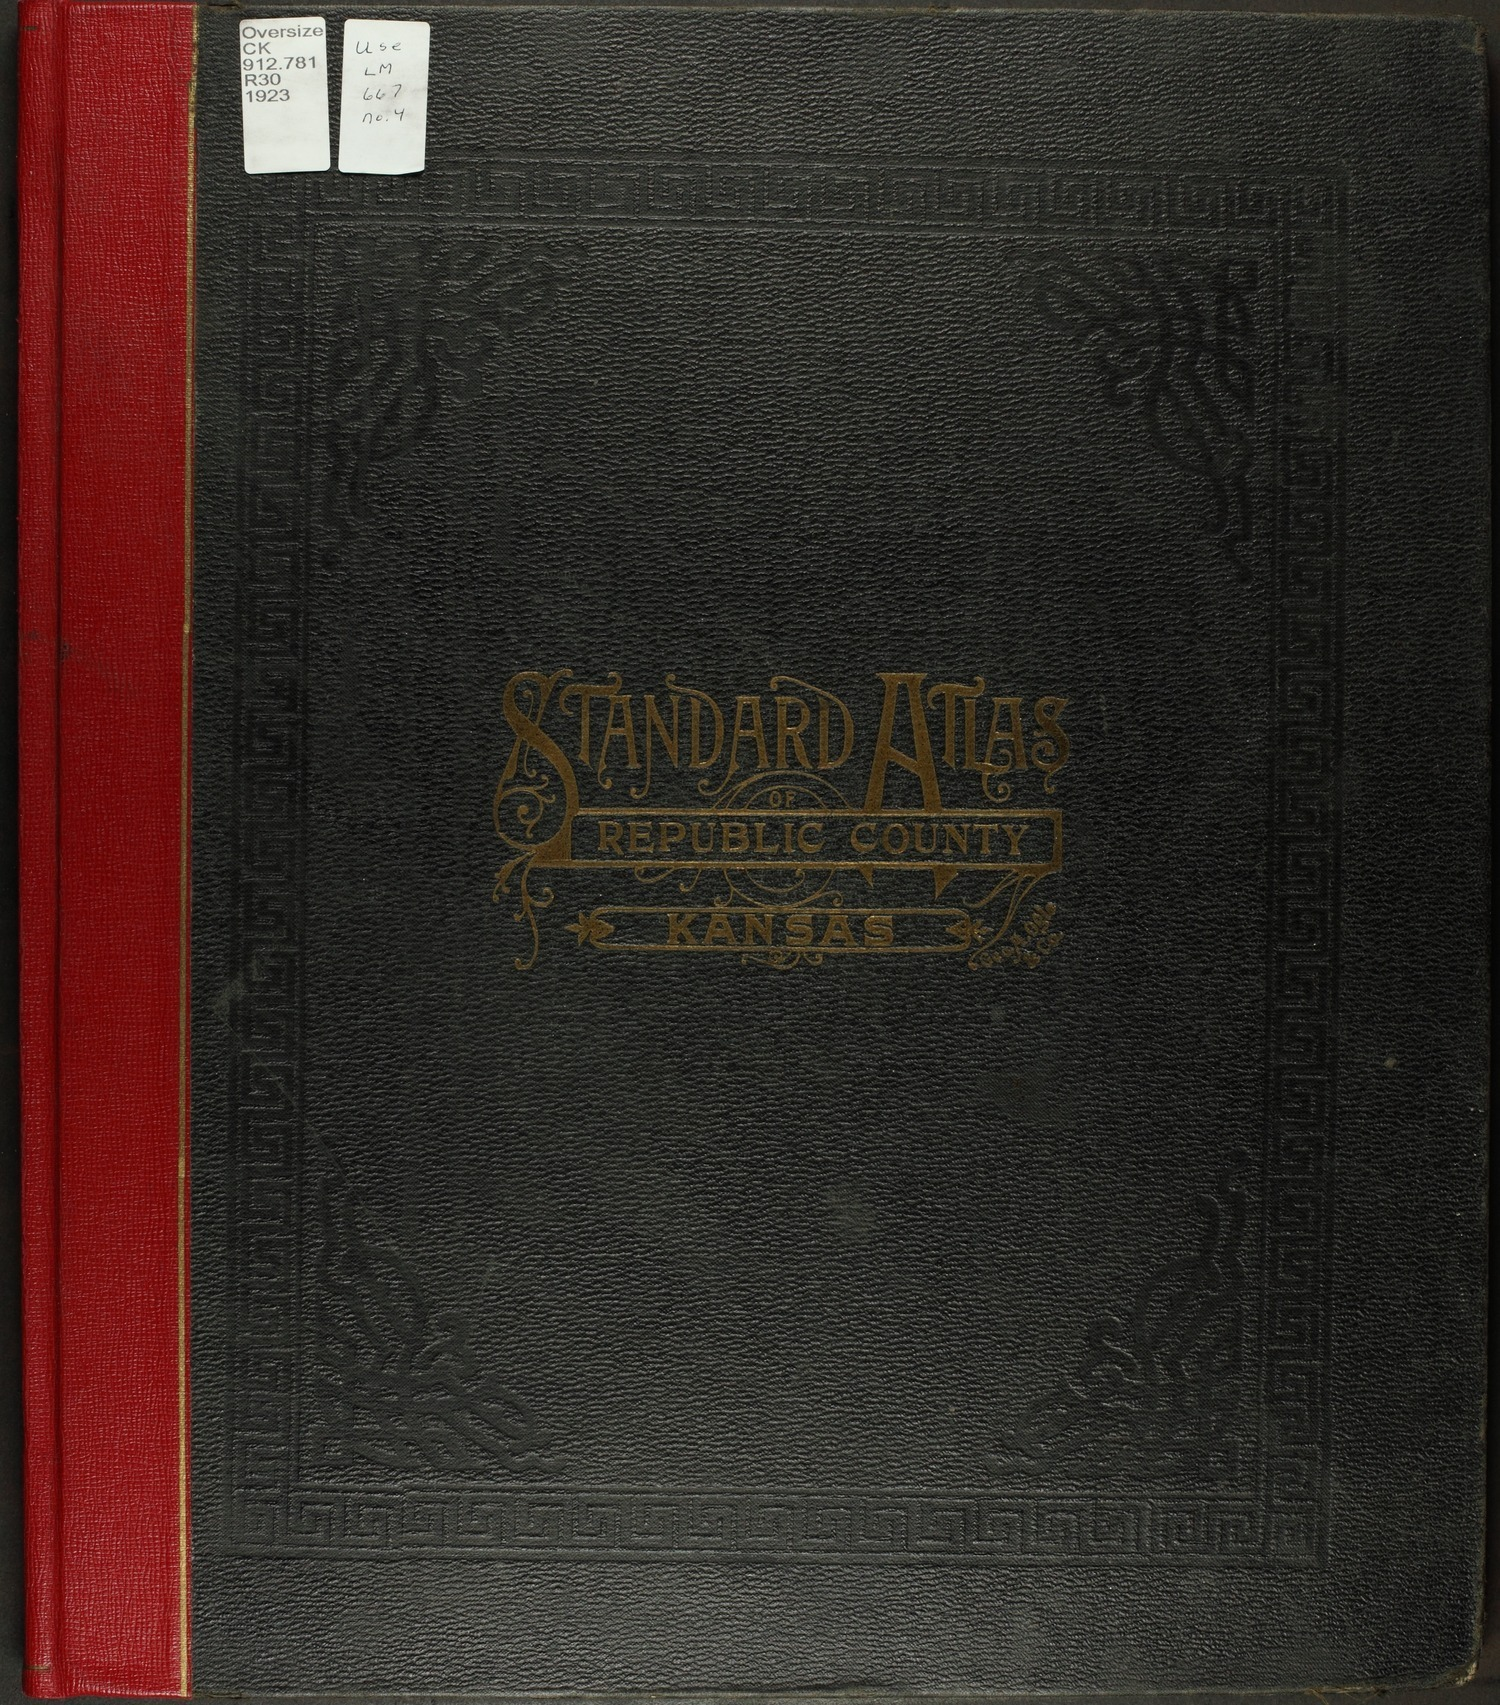 Standard atlas of Republic County, Kansas - Front Cover